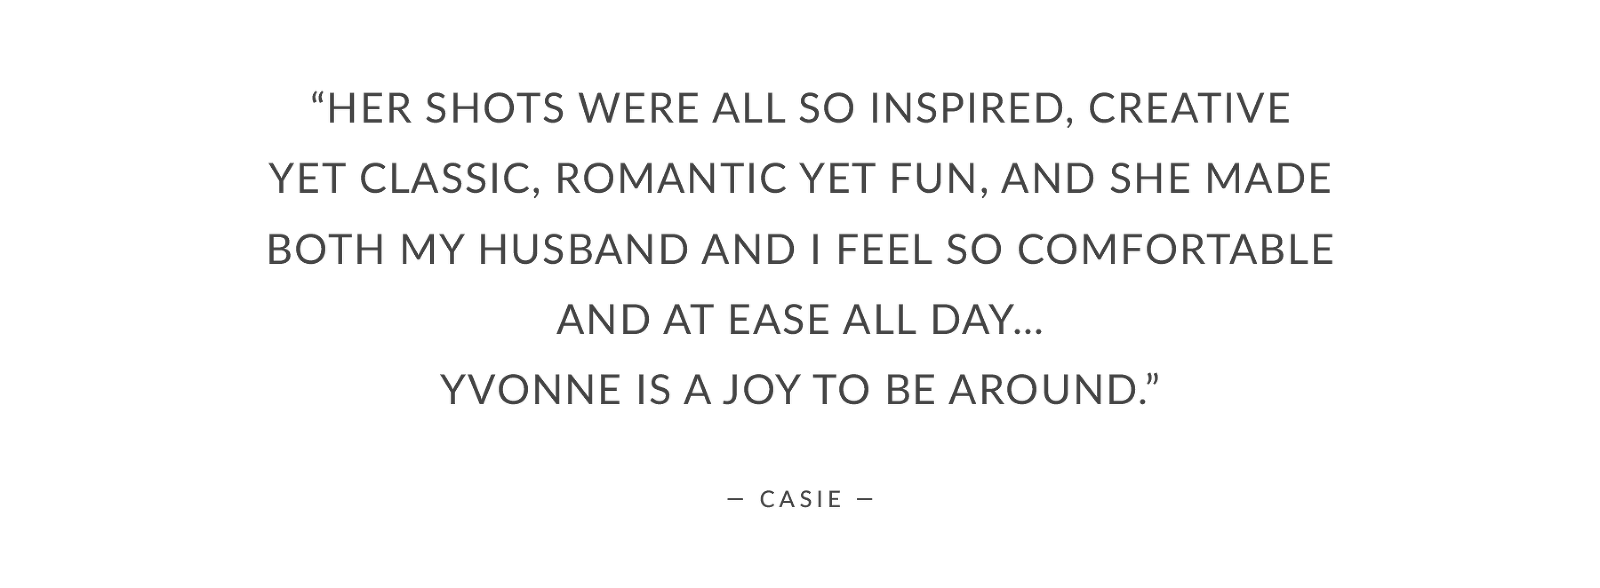 """Her shots were all so inspired, creative yet classic, romantic yet fun, and she made both my husband and I feel so comfortable and at ease all day… Yvonne is a joy to be around."""